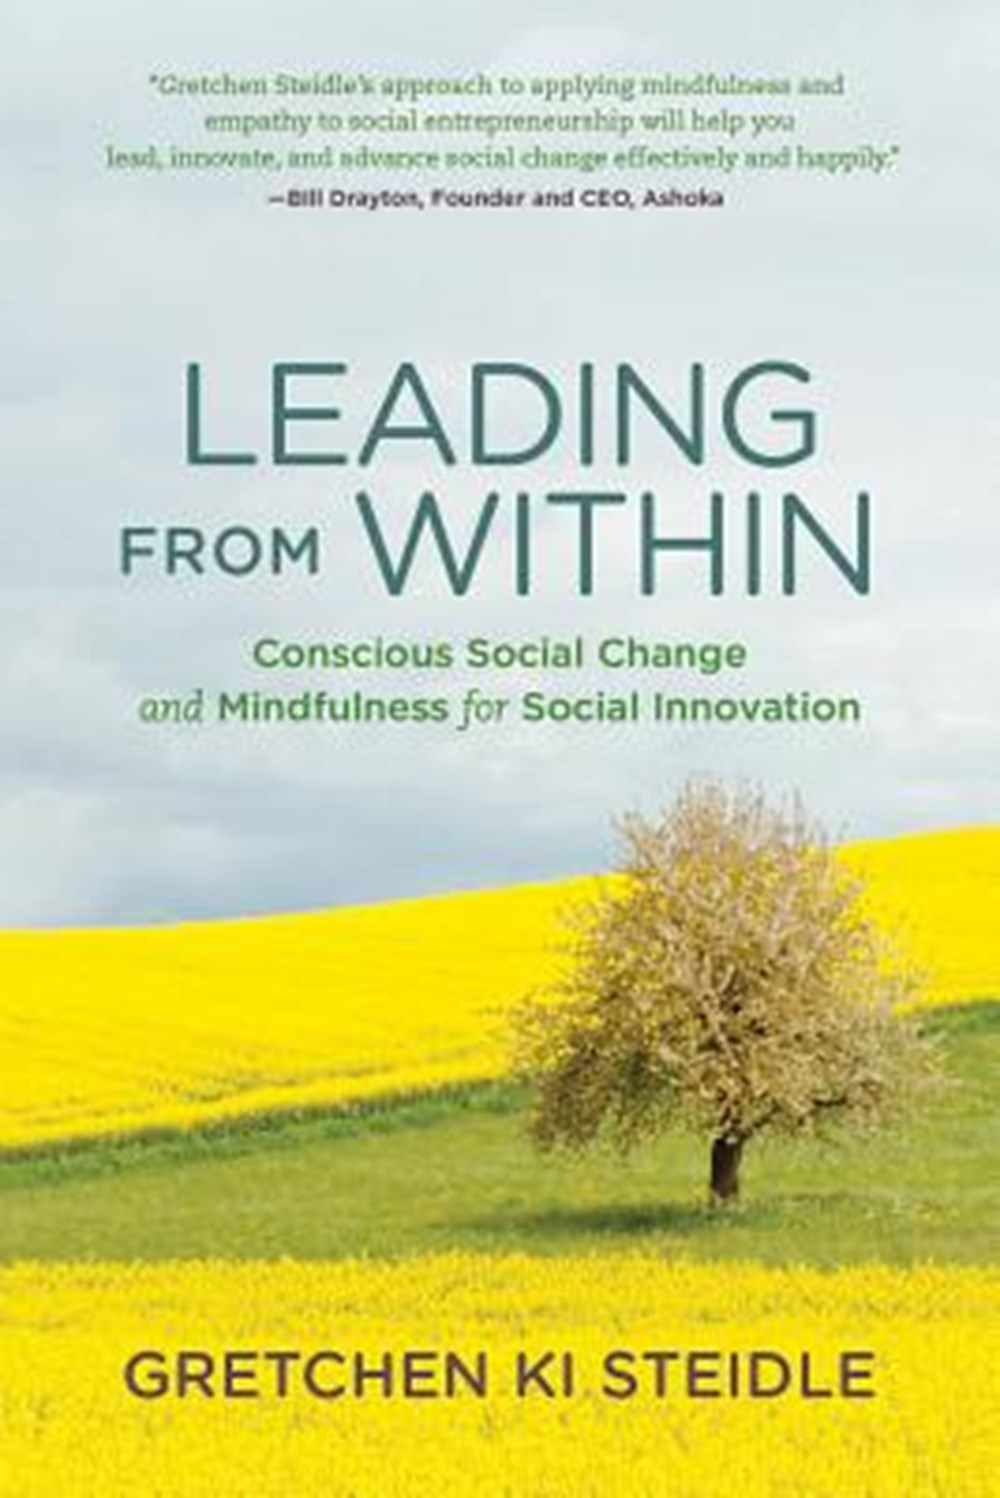 Leading from Within Conscious Social Change and Mindfulness for Social Innovation